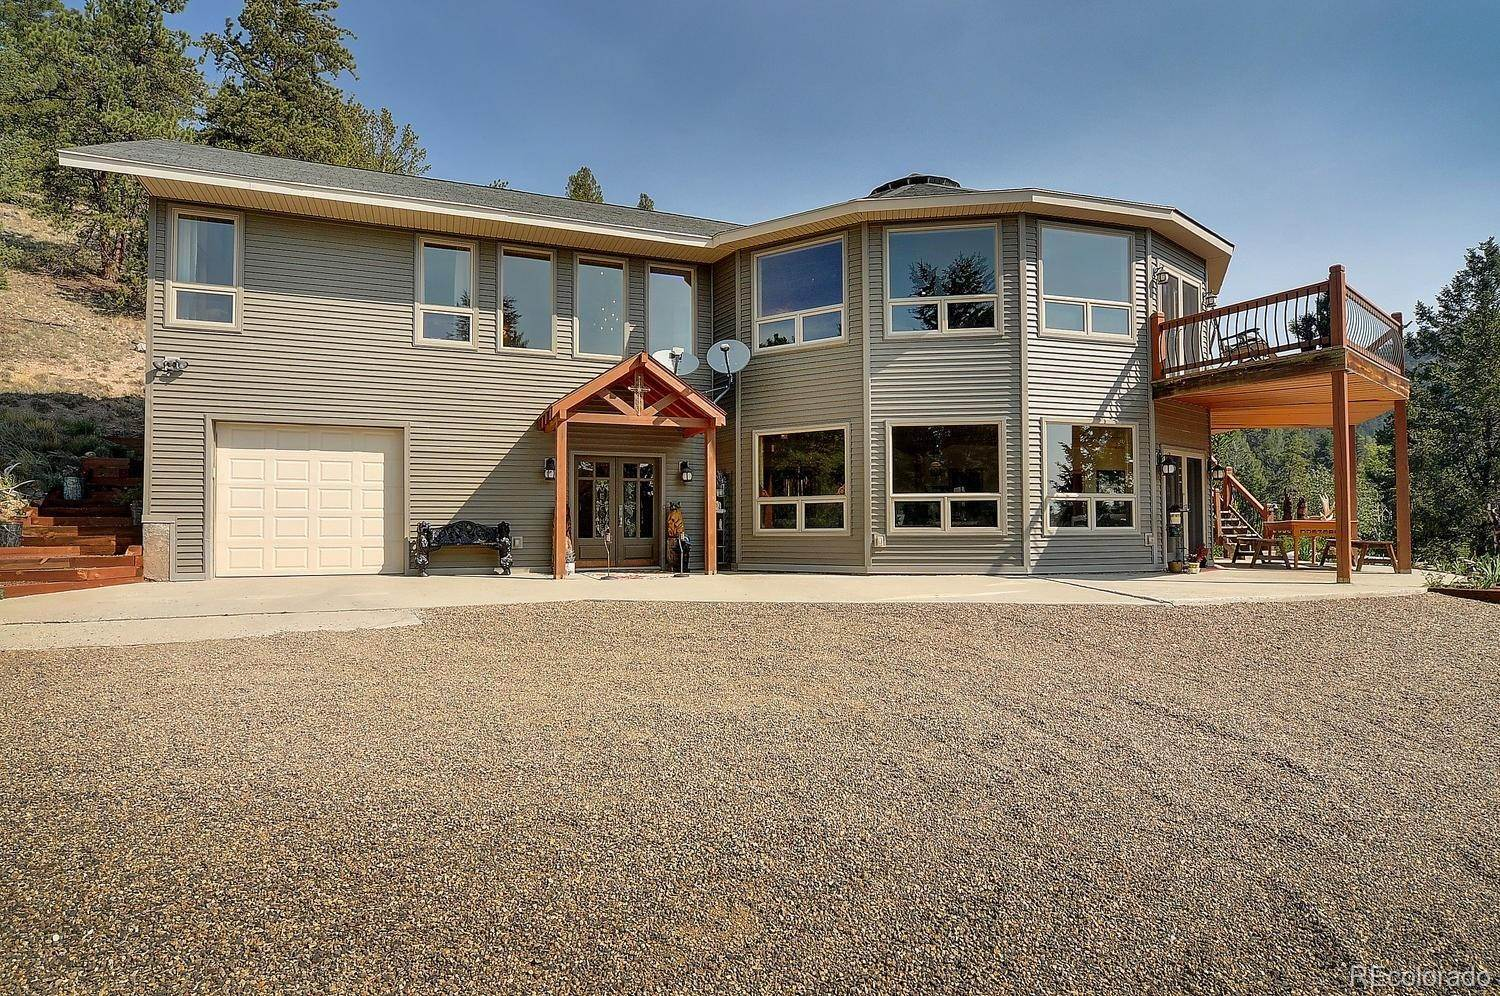 Single Family Homes for Sale at 45625 County Road PP46 45625 County Road PP46 Villa Grove, Colorado 81155 United States